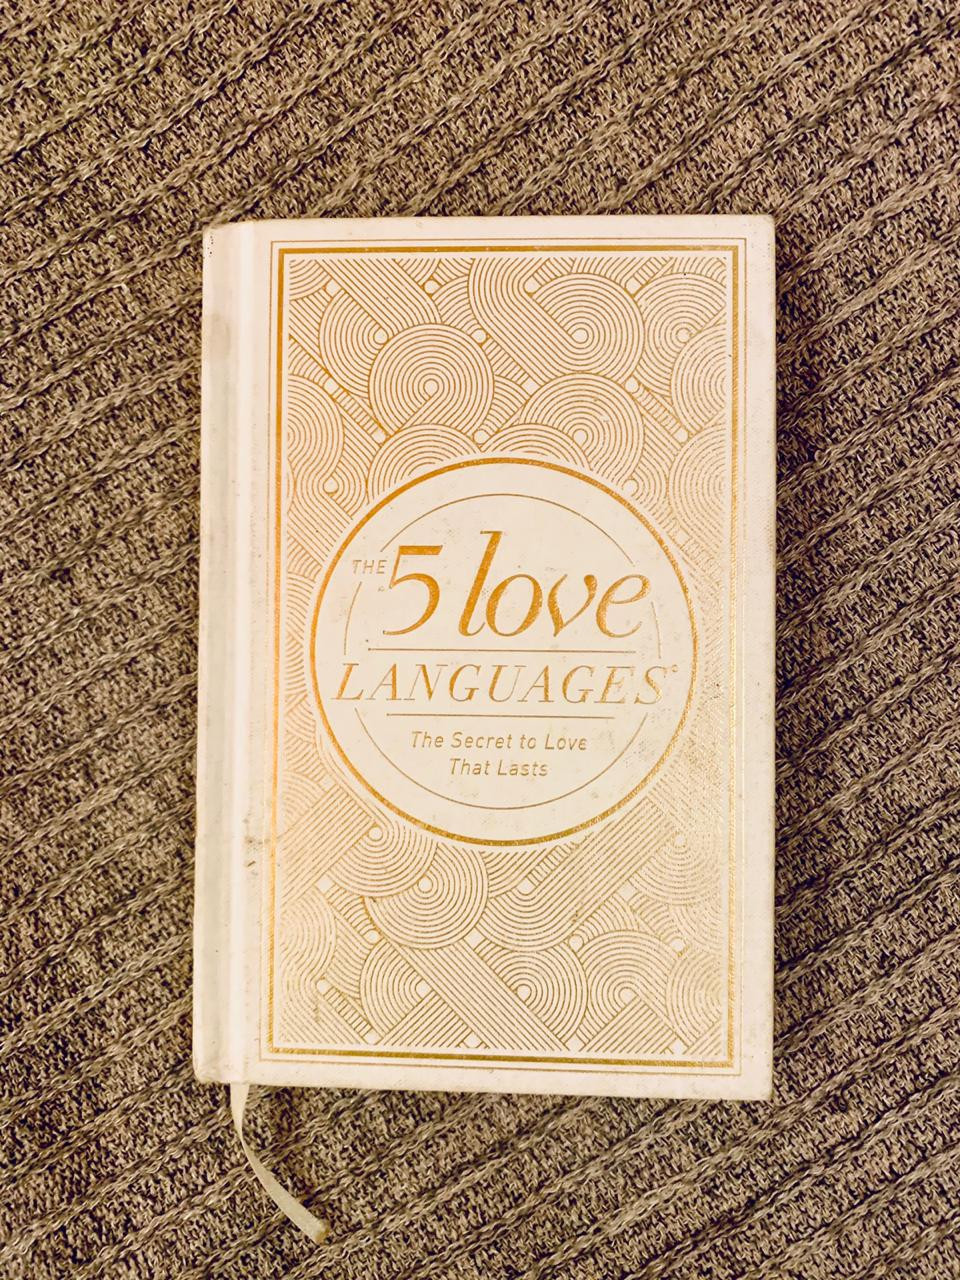 The 5 love languages  - the secret to love that lasts - Gary Chapman